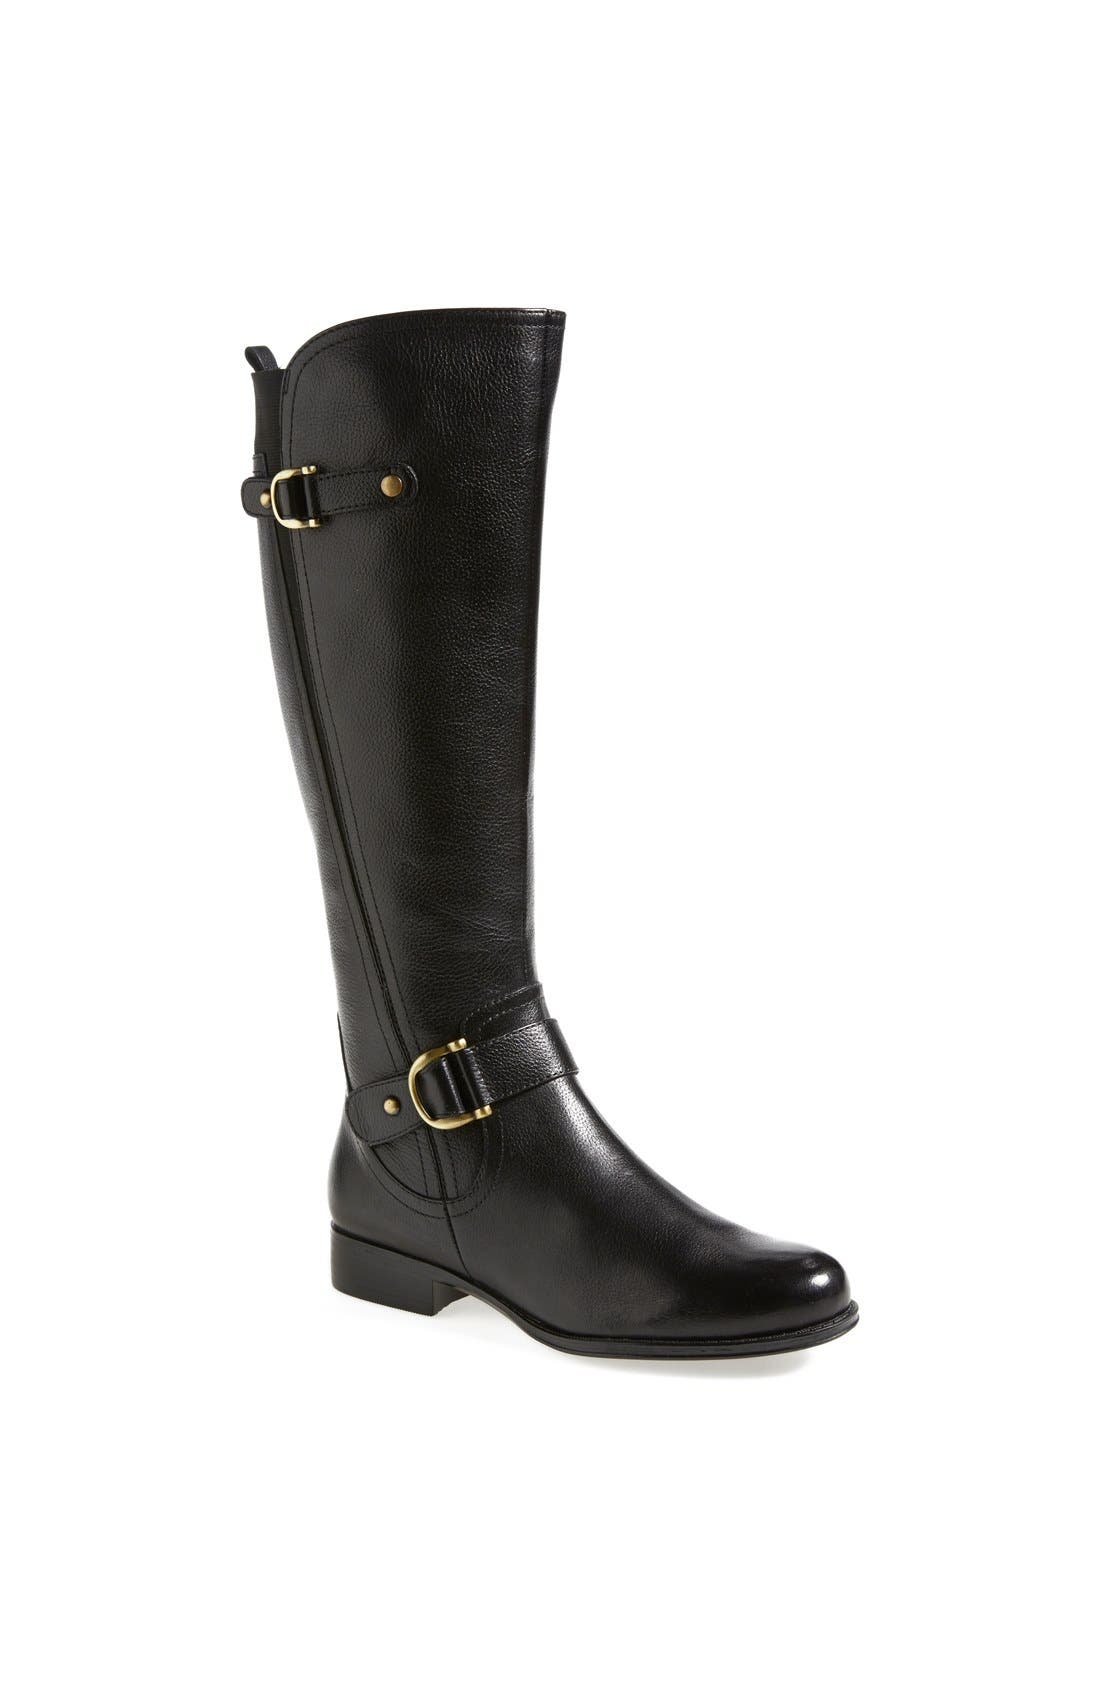 Alternate Image 1 Selected - Naturalizer 'Jersey' Leather Riding Boot (Wide Calf) (Women)